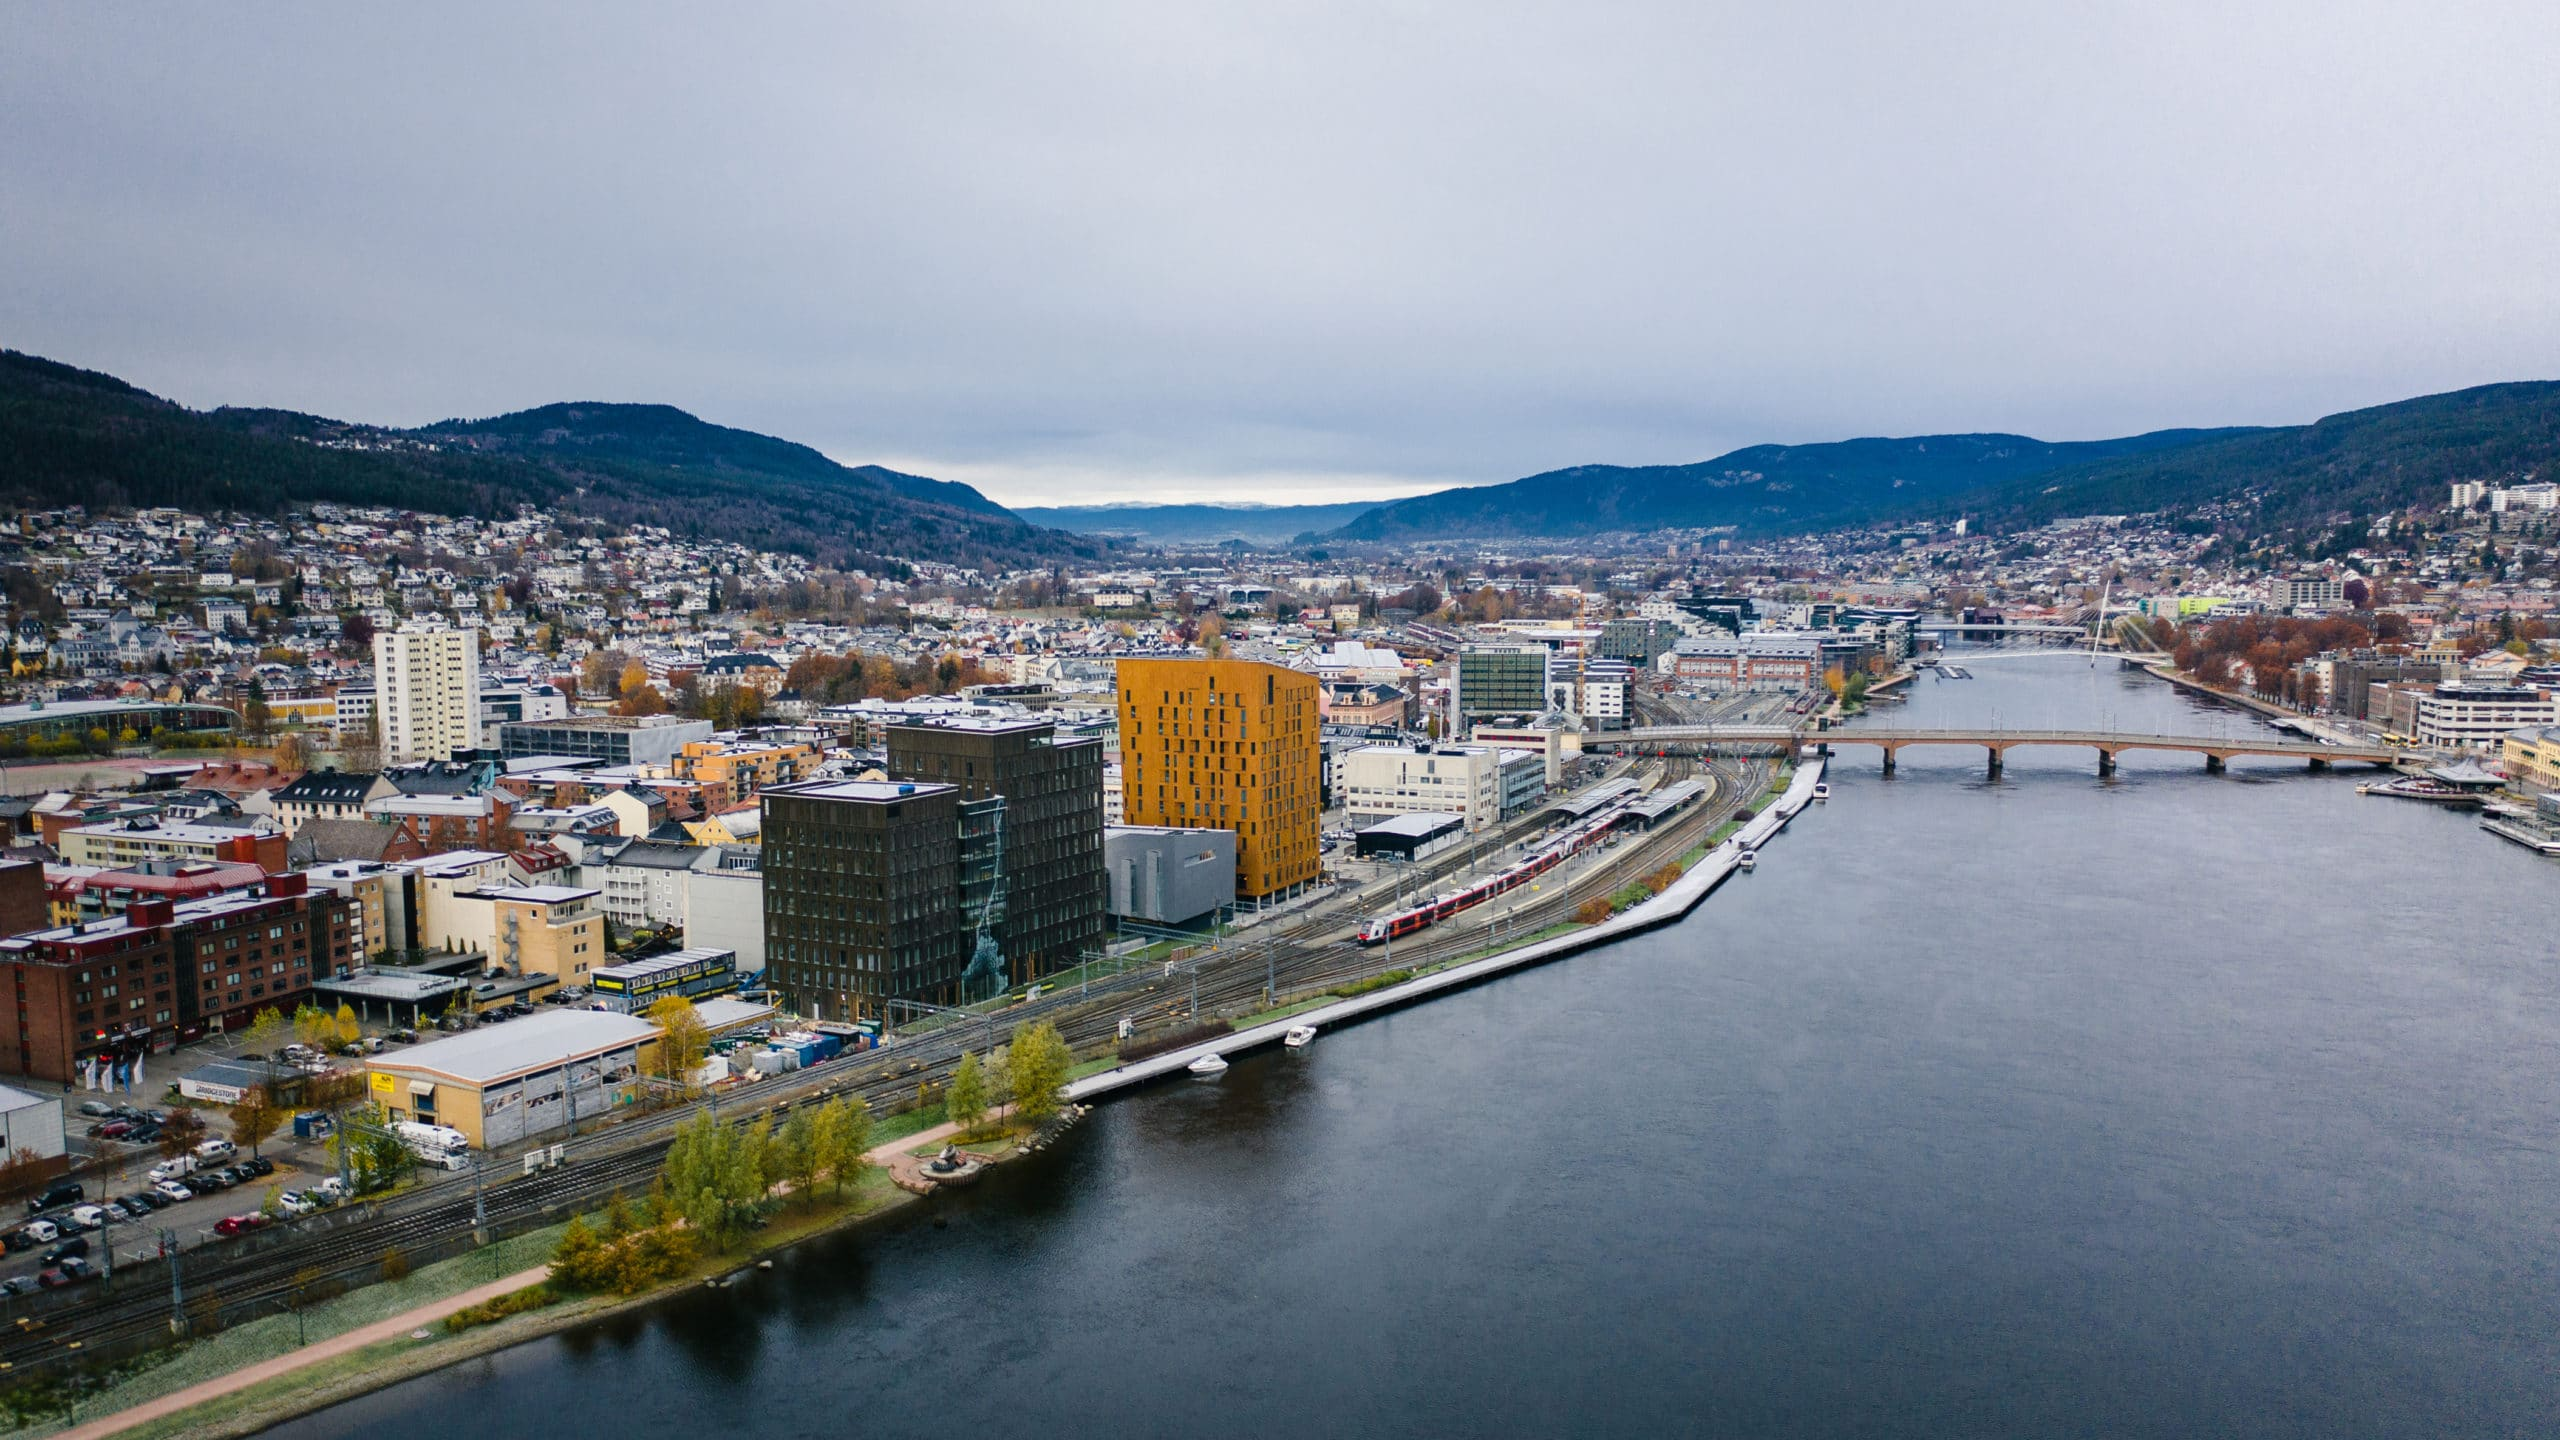 The Norwegian city of Drammen